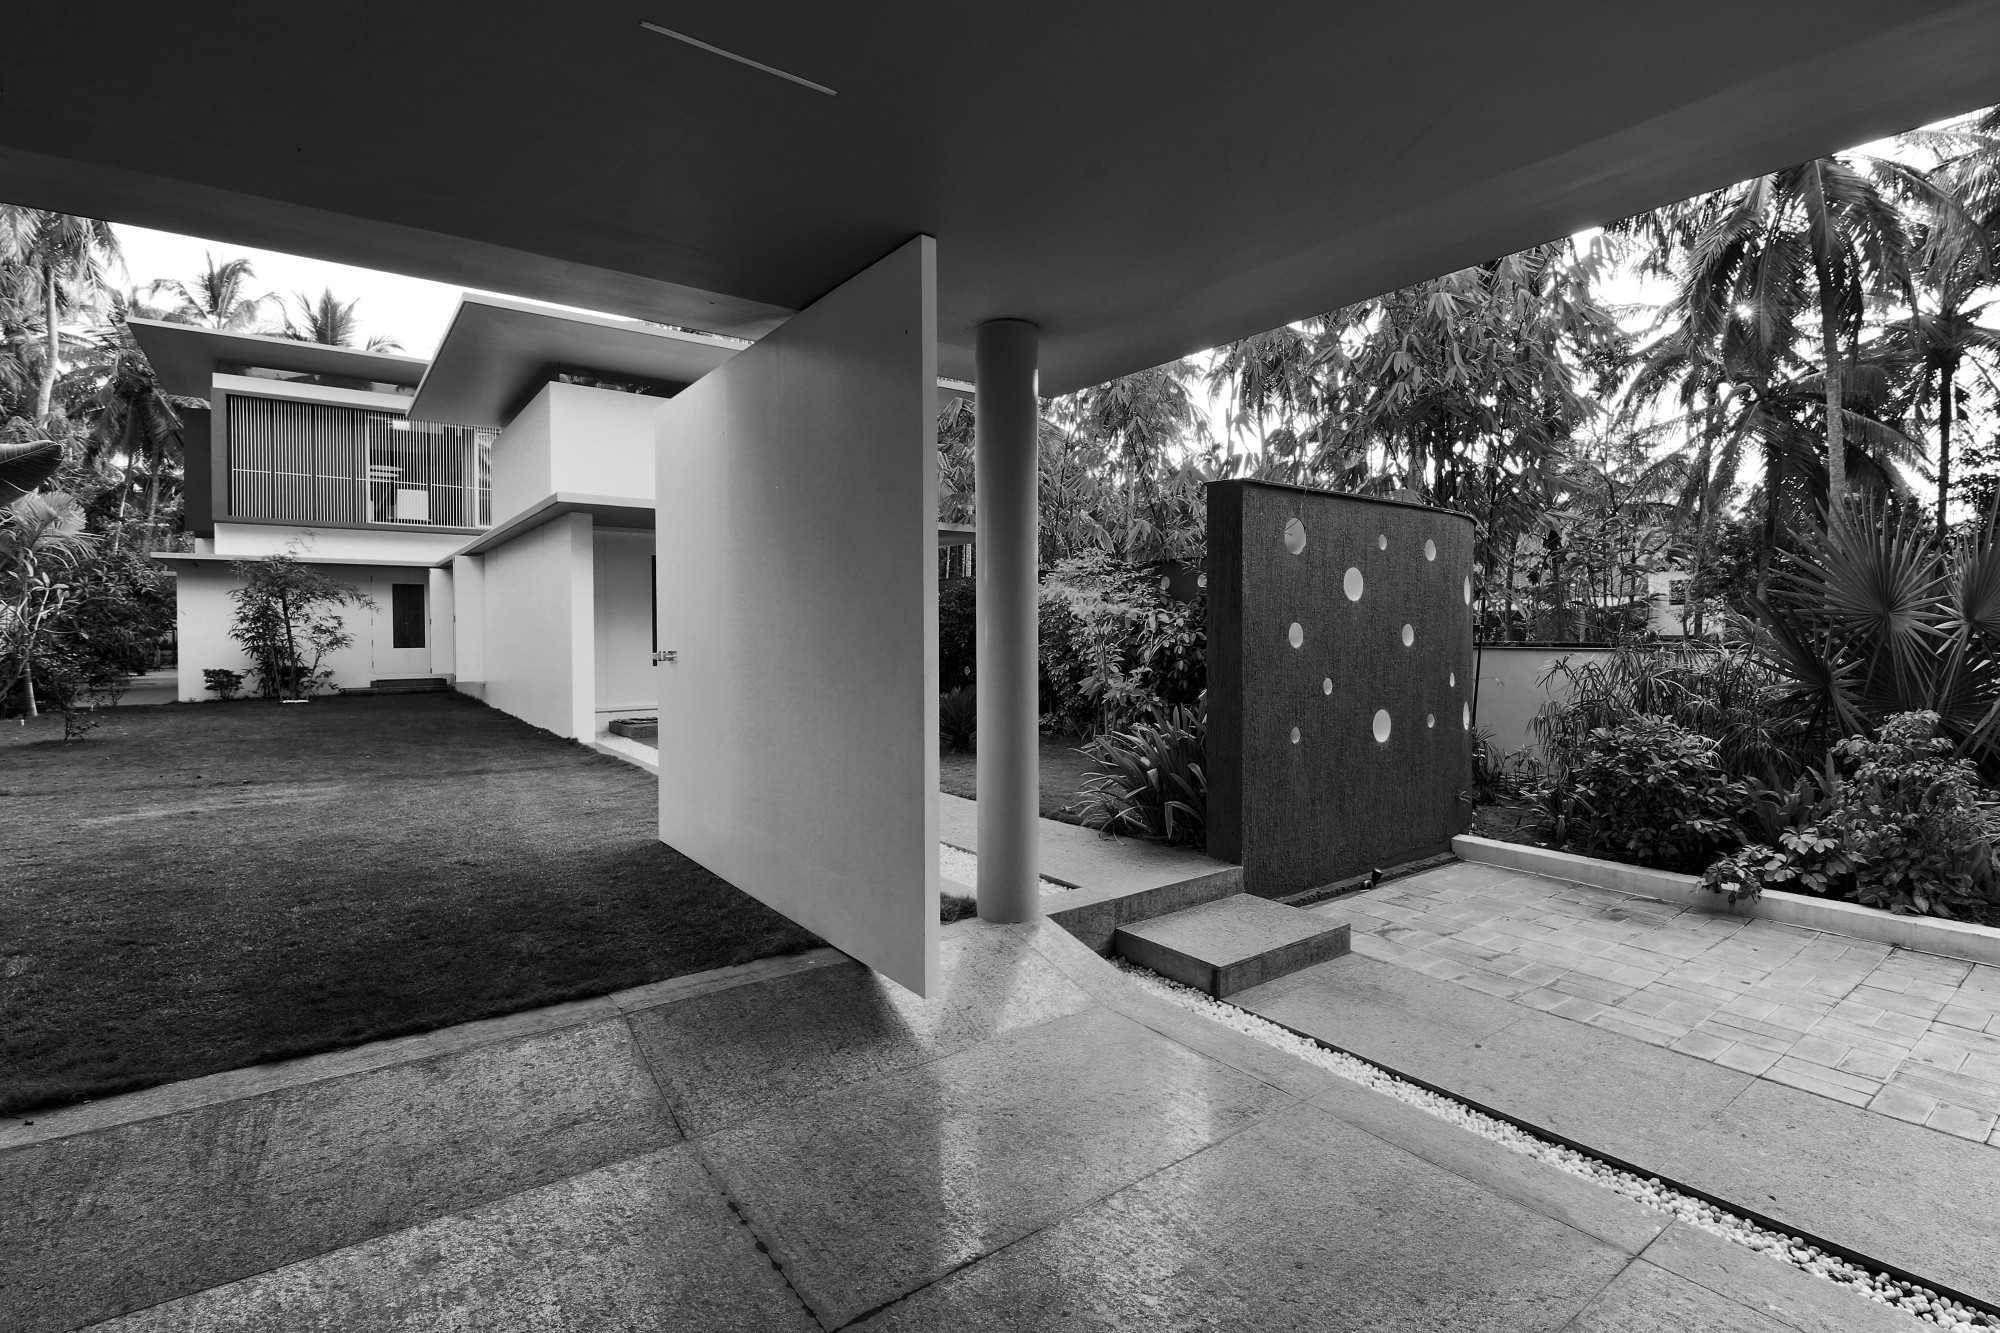 The Floating Parasol House at Thirur, Kerala, by LIJO RENY architects 234